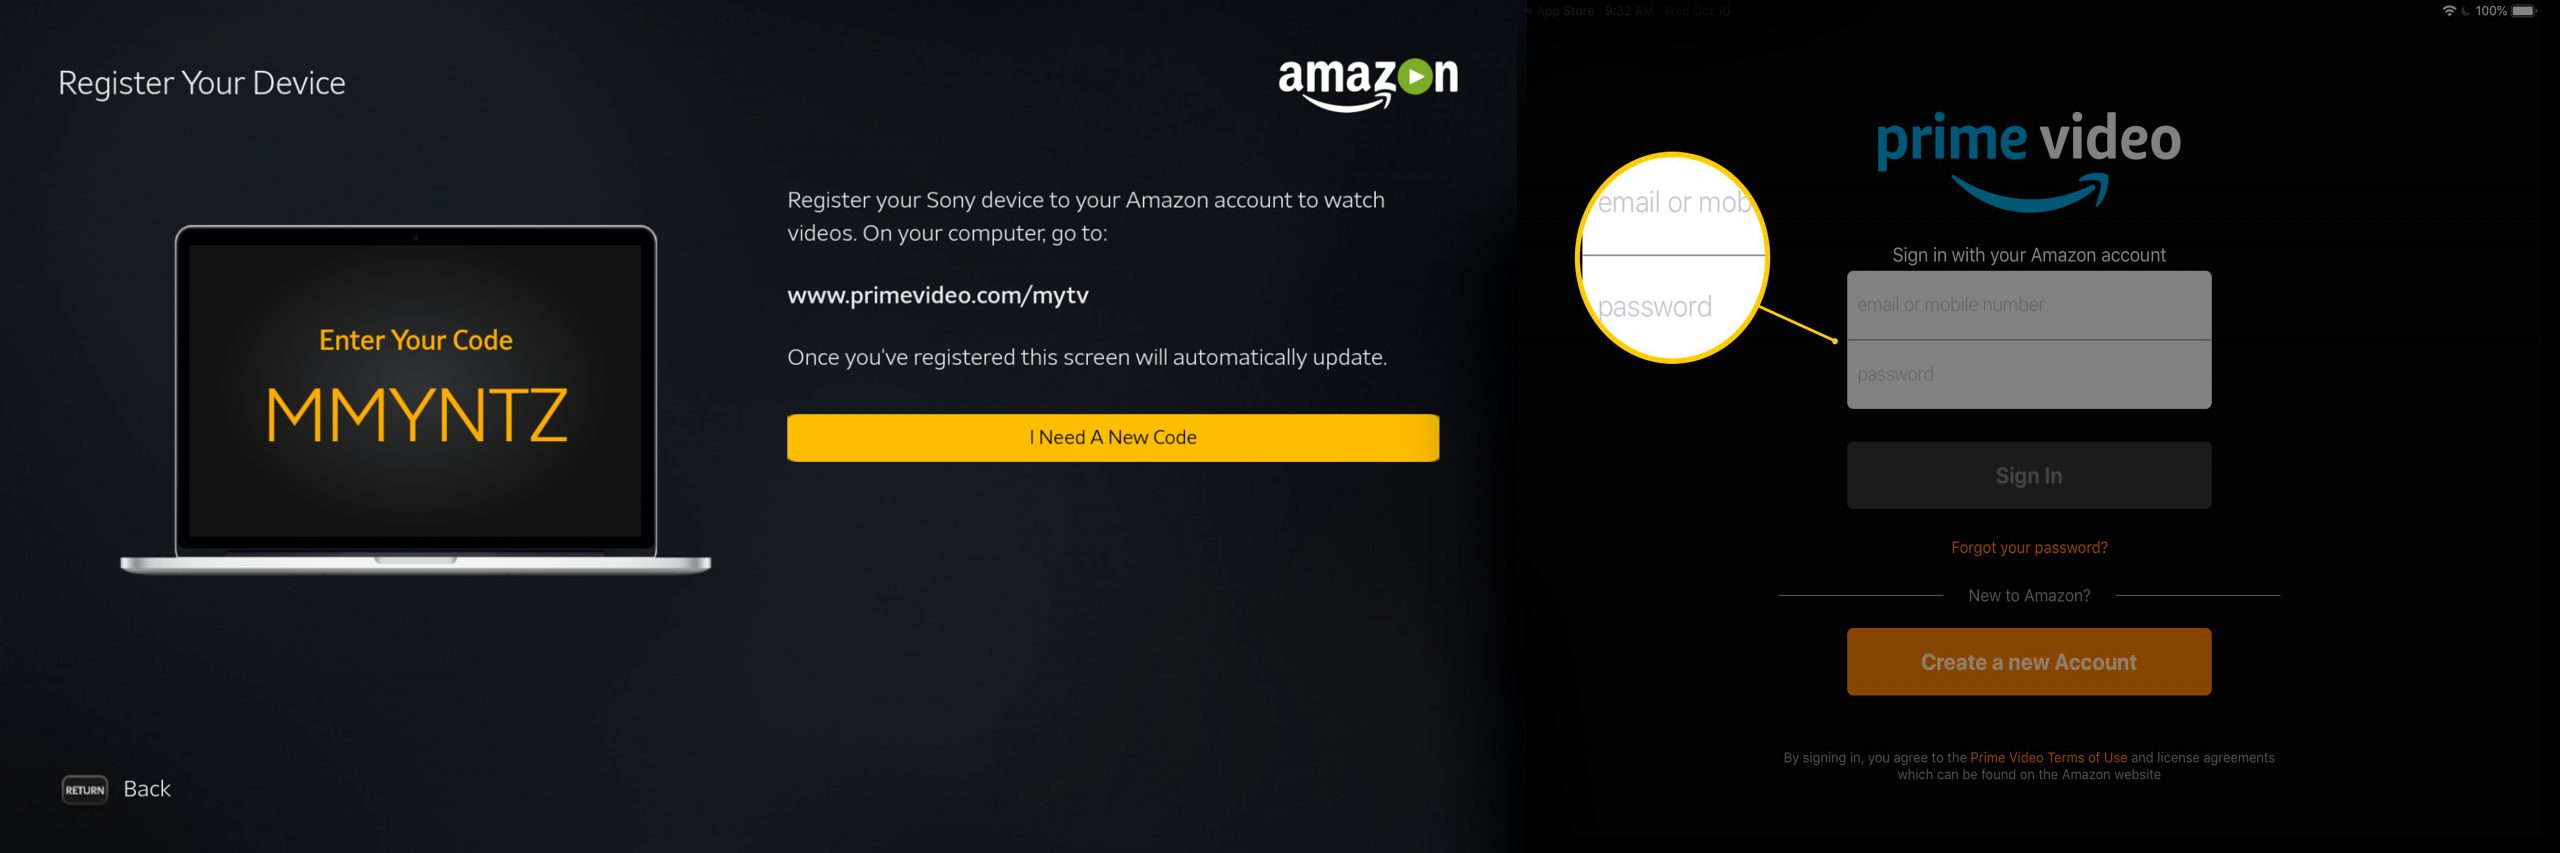 Amazon.com/mytv - Enter Code Here to Activate Amazon Prime Tv